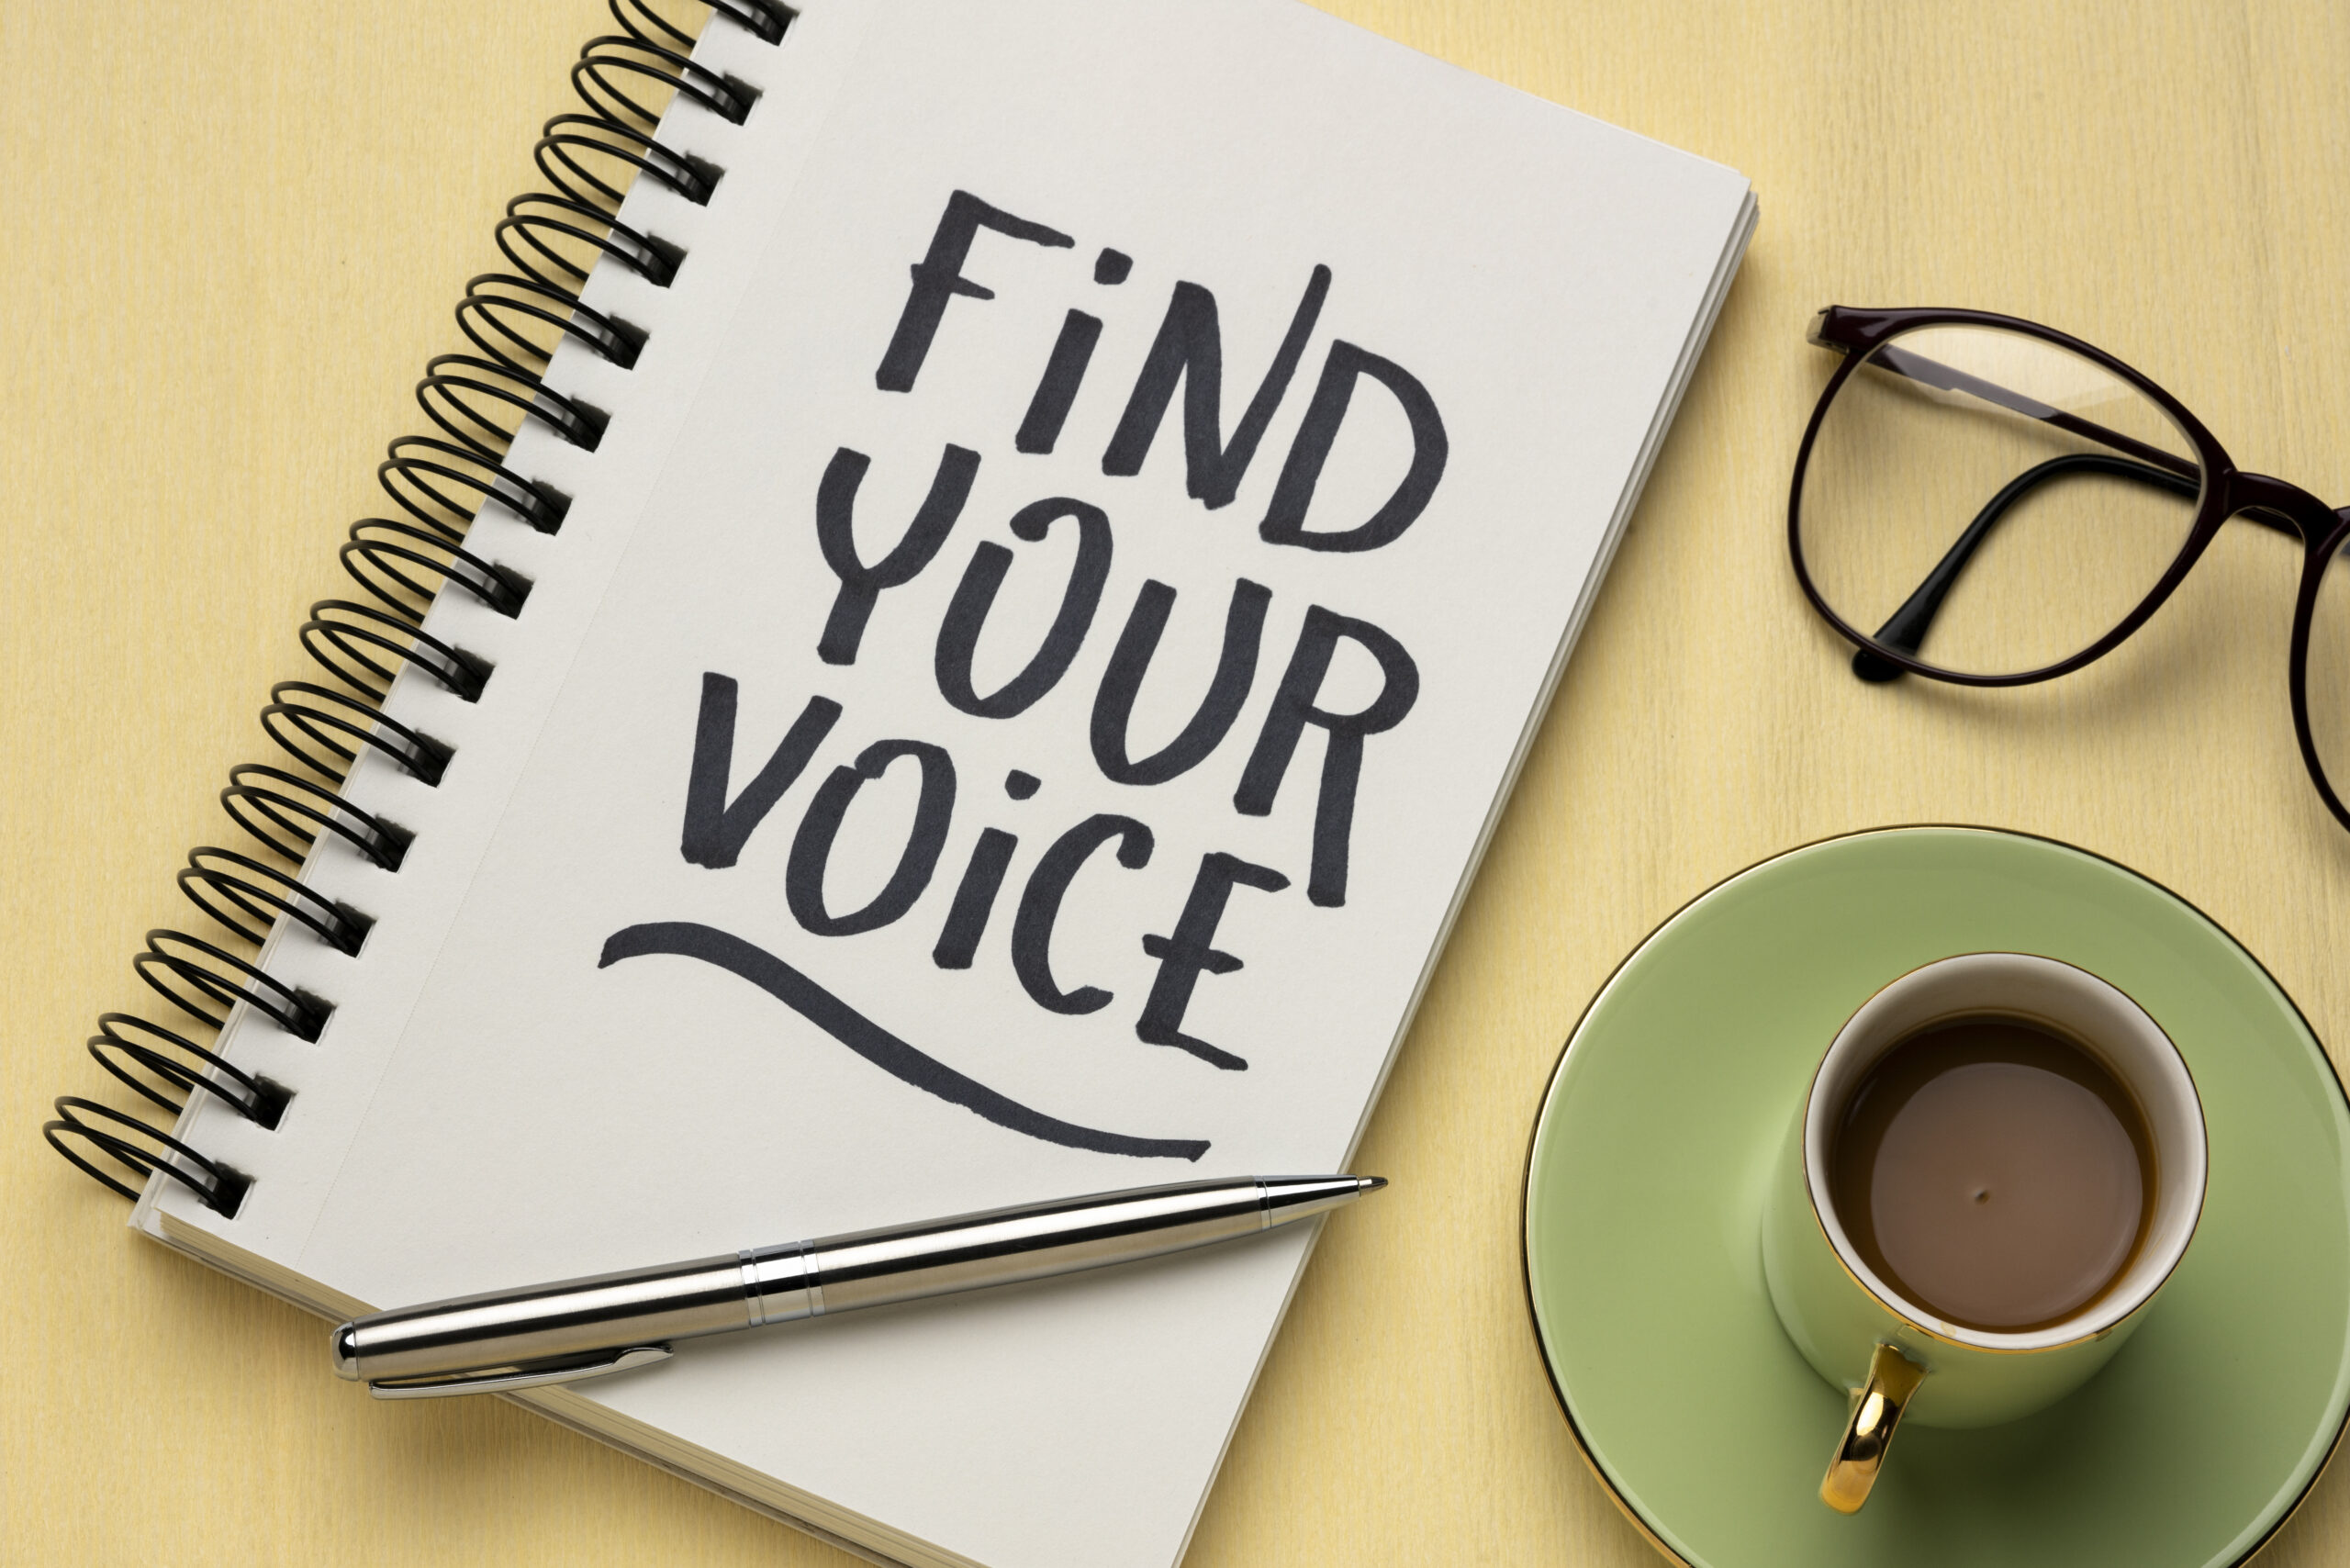 Free Your Voice